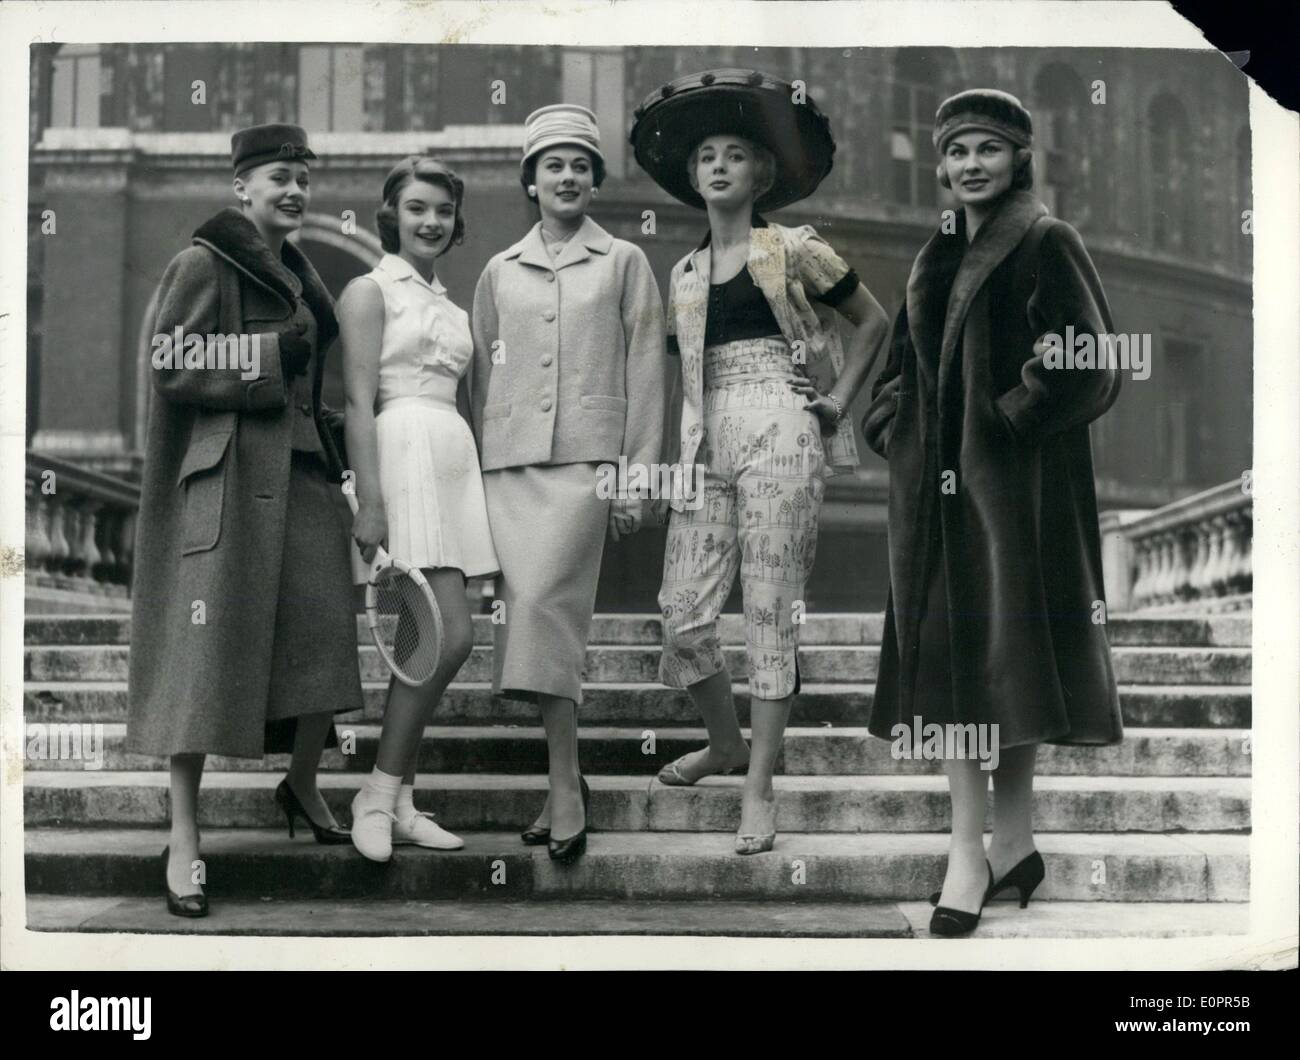 Nov. 11, 1956 - Fashion and beauty parade at Albert Hall. Five of the styles on show: A preview was held at the Royal Albert Hall today of the seven day fashion and beauty Parade at which styles by London's leading designers will be shown. Half the admission fees throughout the show will be donated to Hungarian Relief - Stock Image